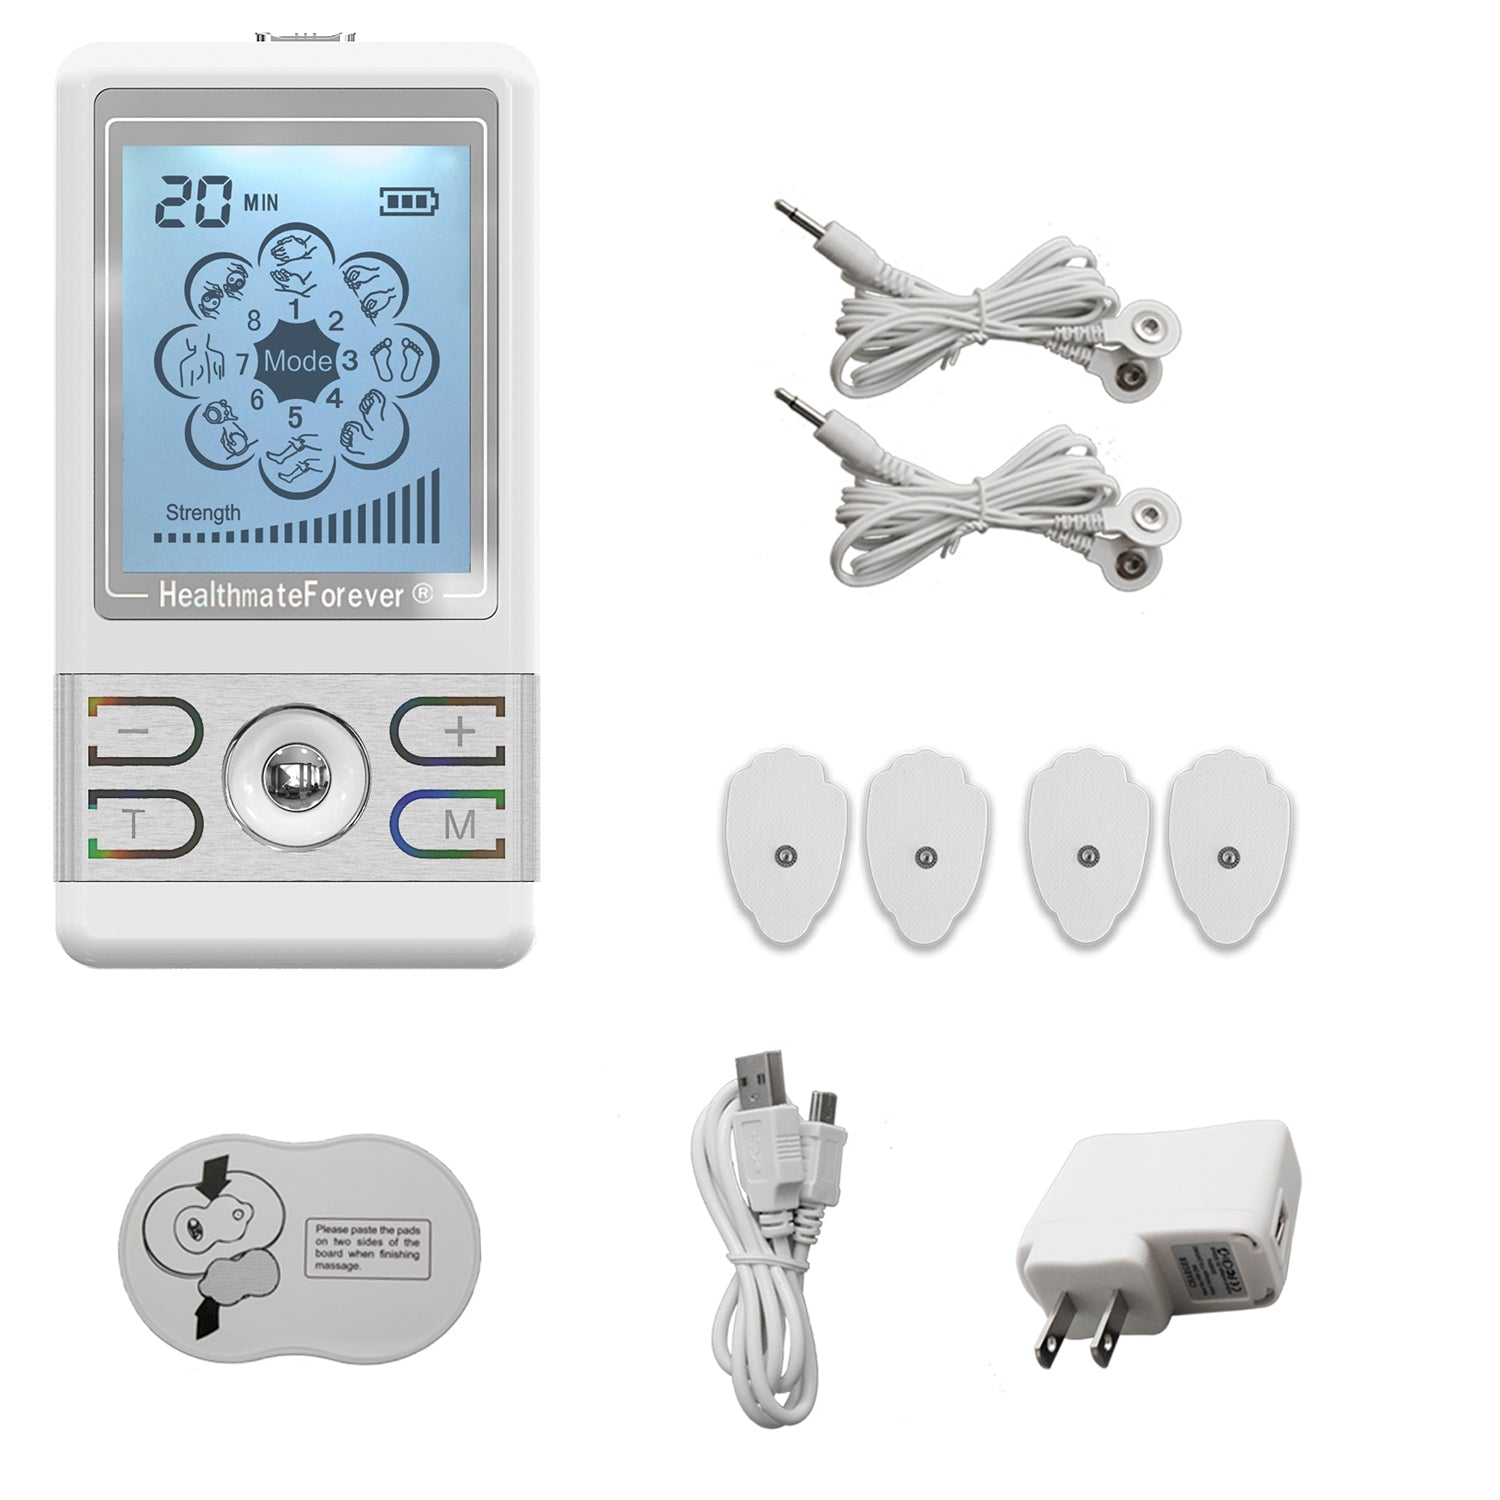 Free Massage Belt + BM8ML TENS Unit & Muscle Stimulator - HealthmateForever.com